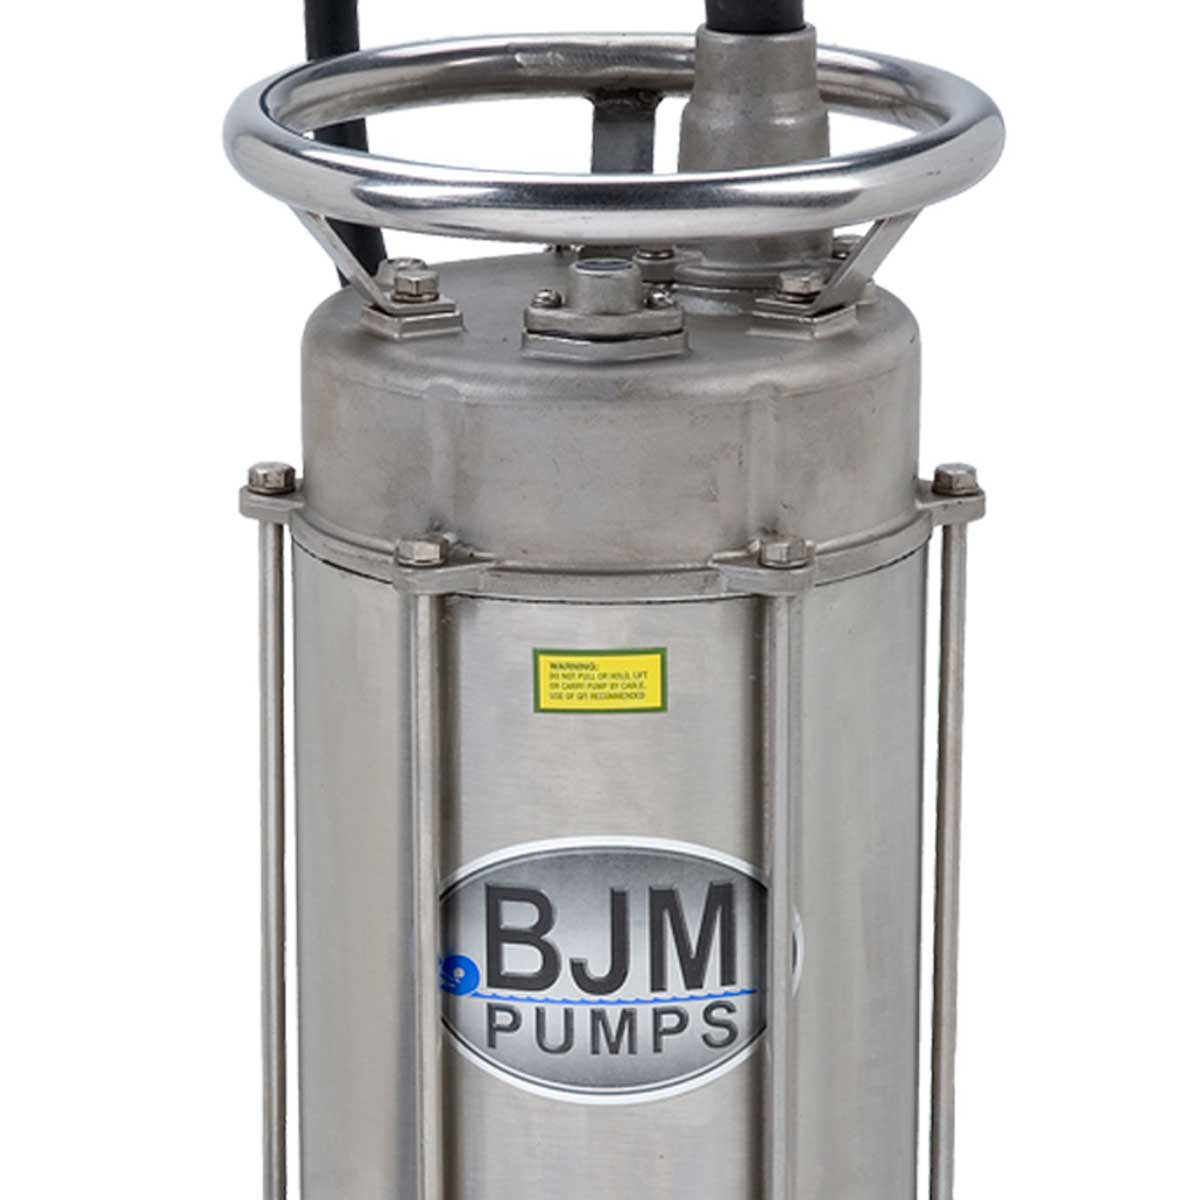 Bjm stainless steel submersible pump v contractors